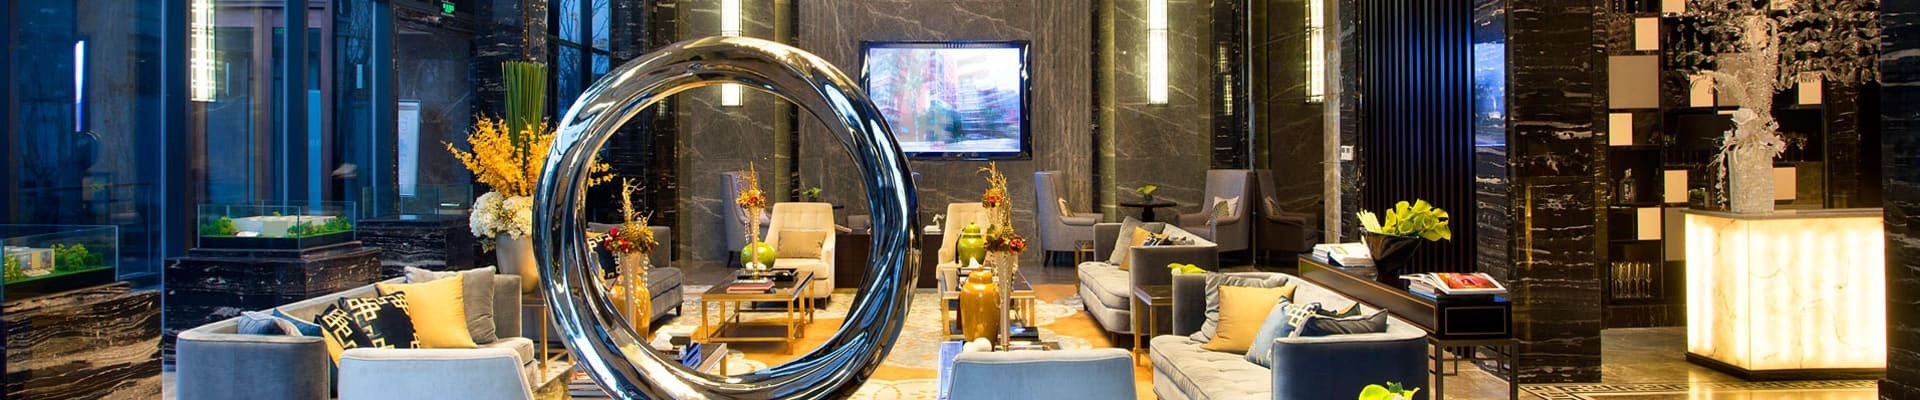 Don't Worship Bulgari, These 14 Luxury Amenities are a Must